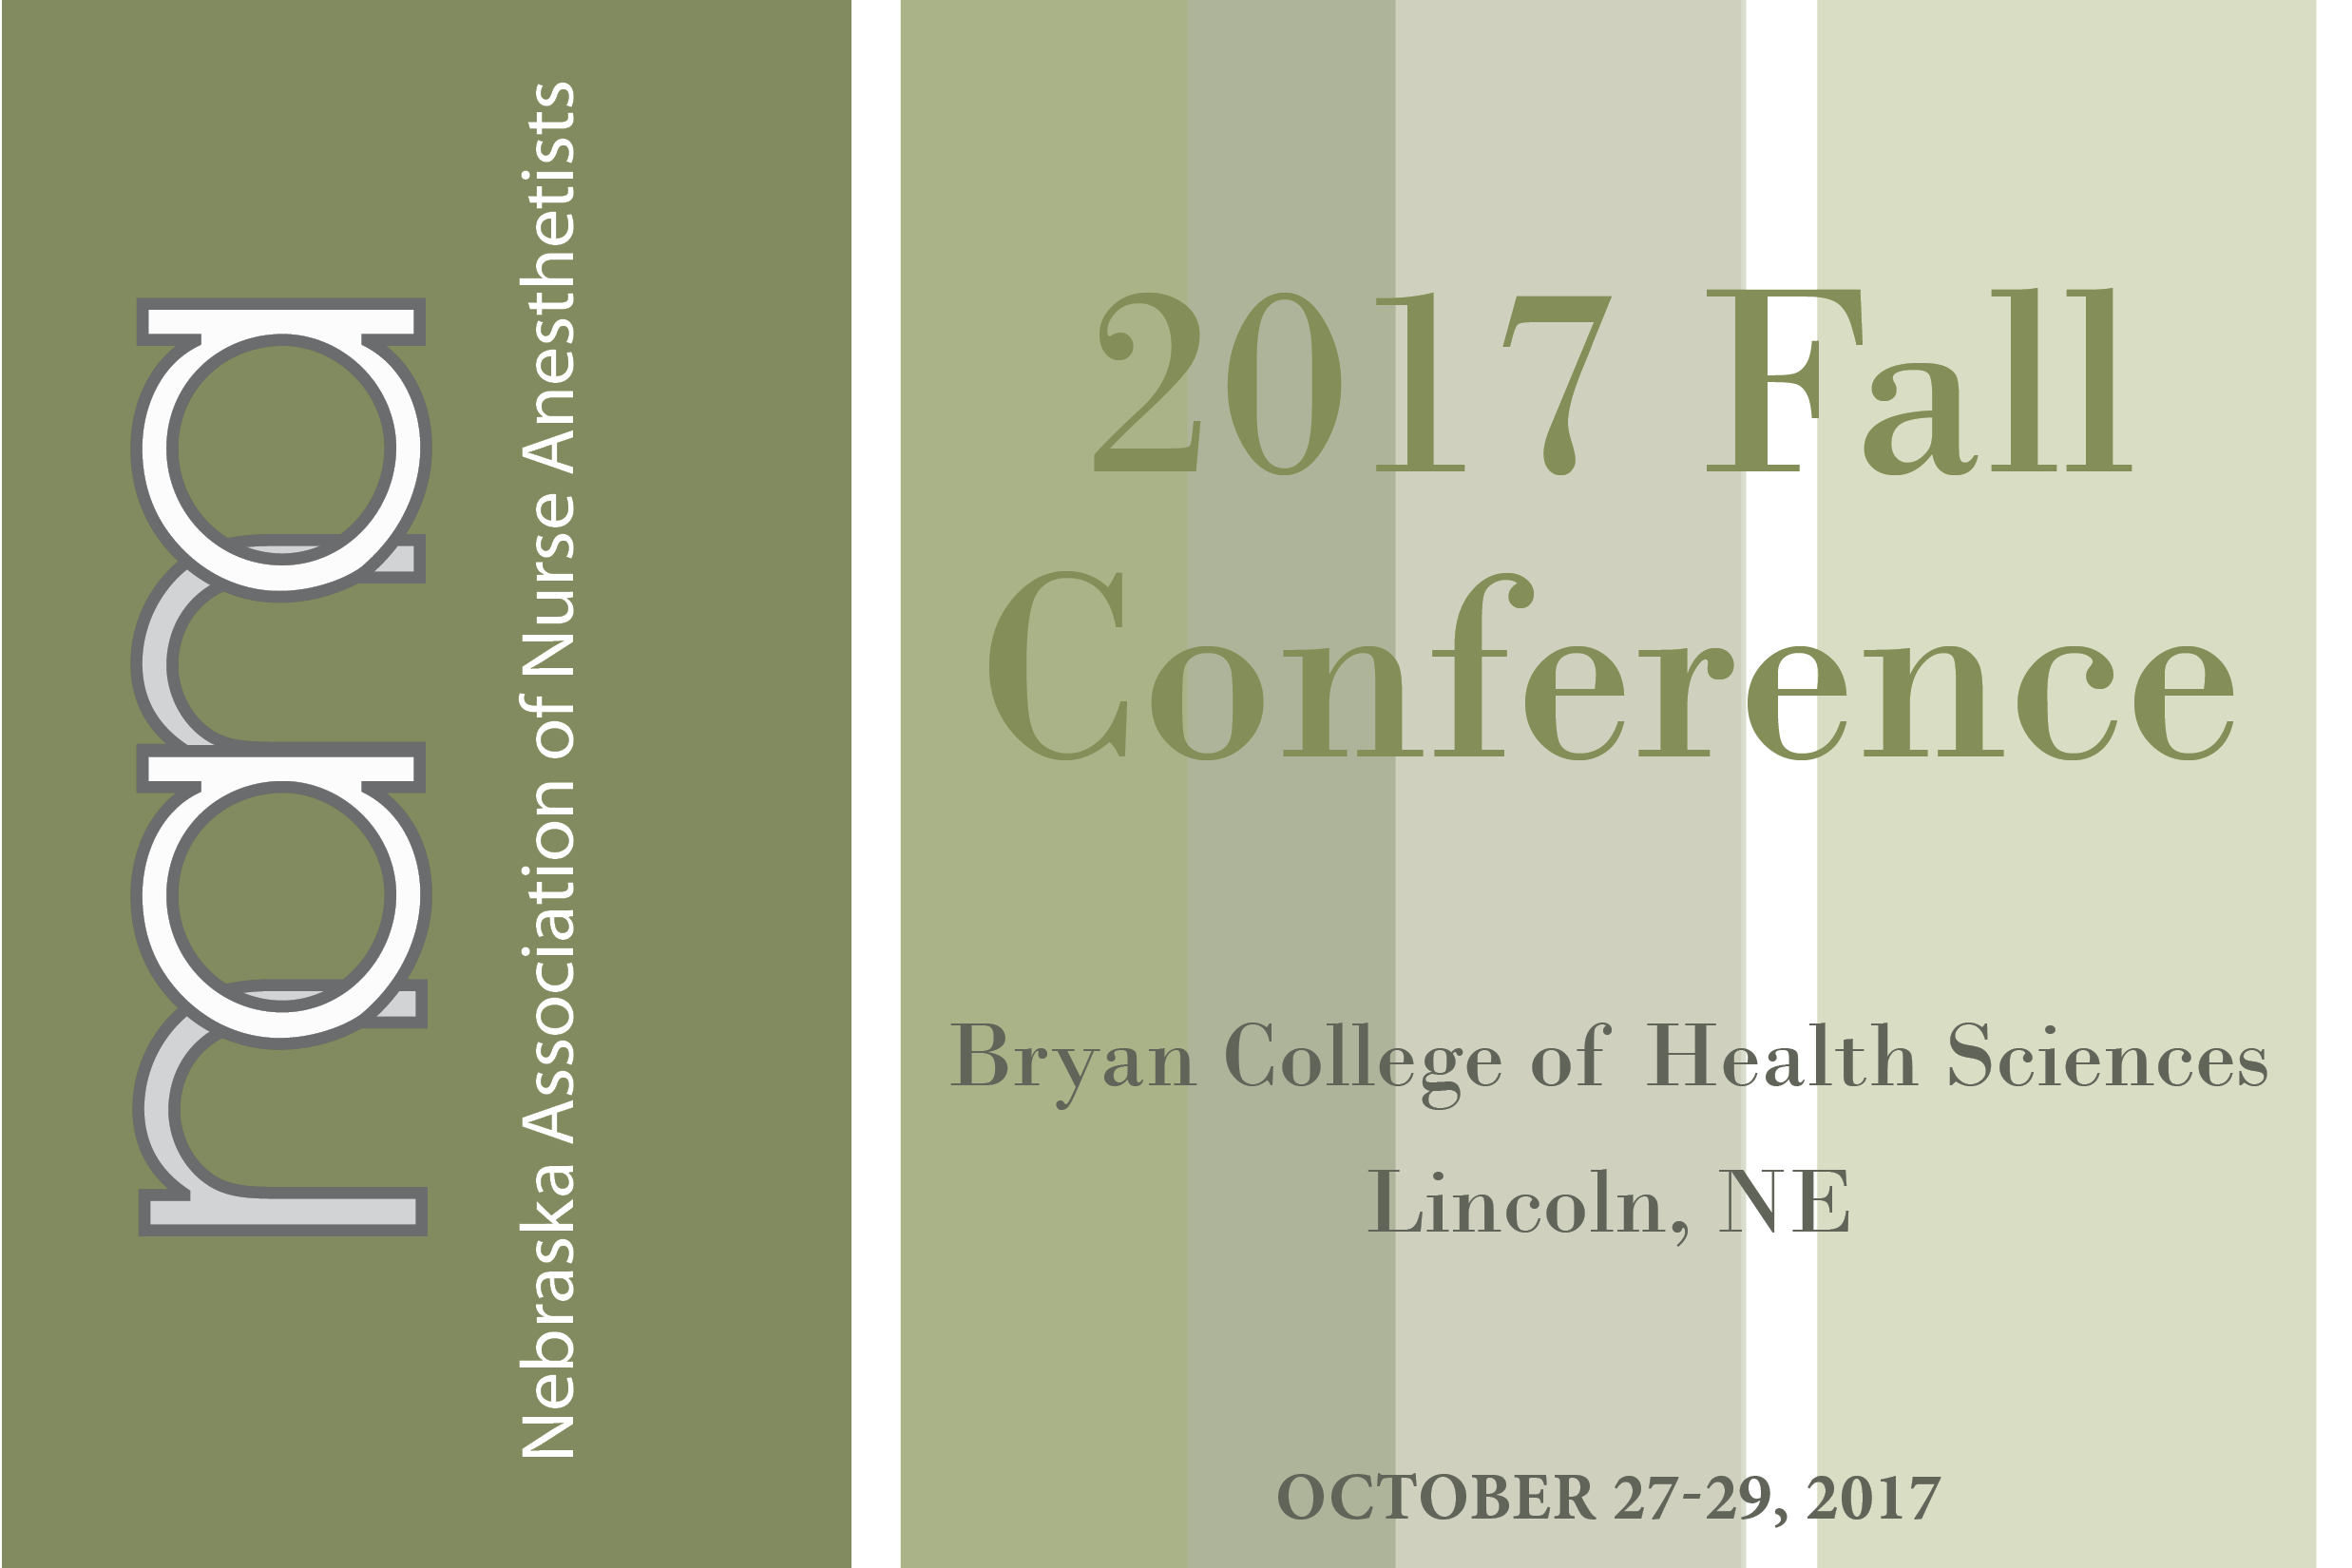 2017 Fall Conference